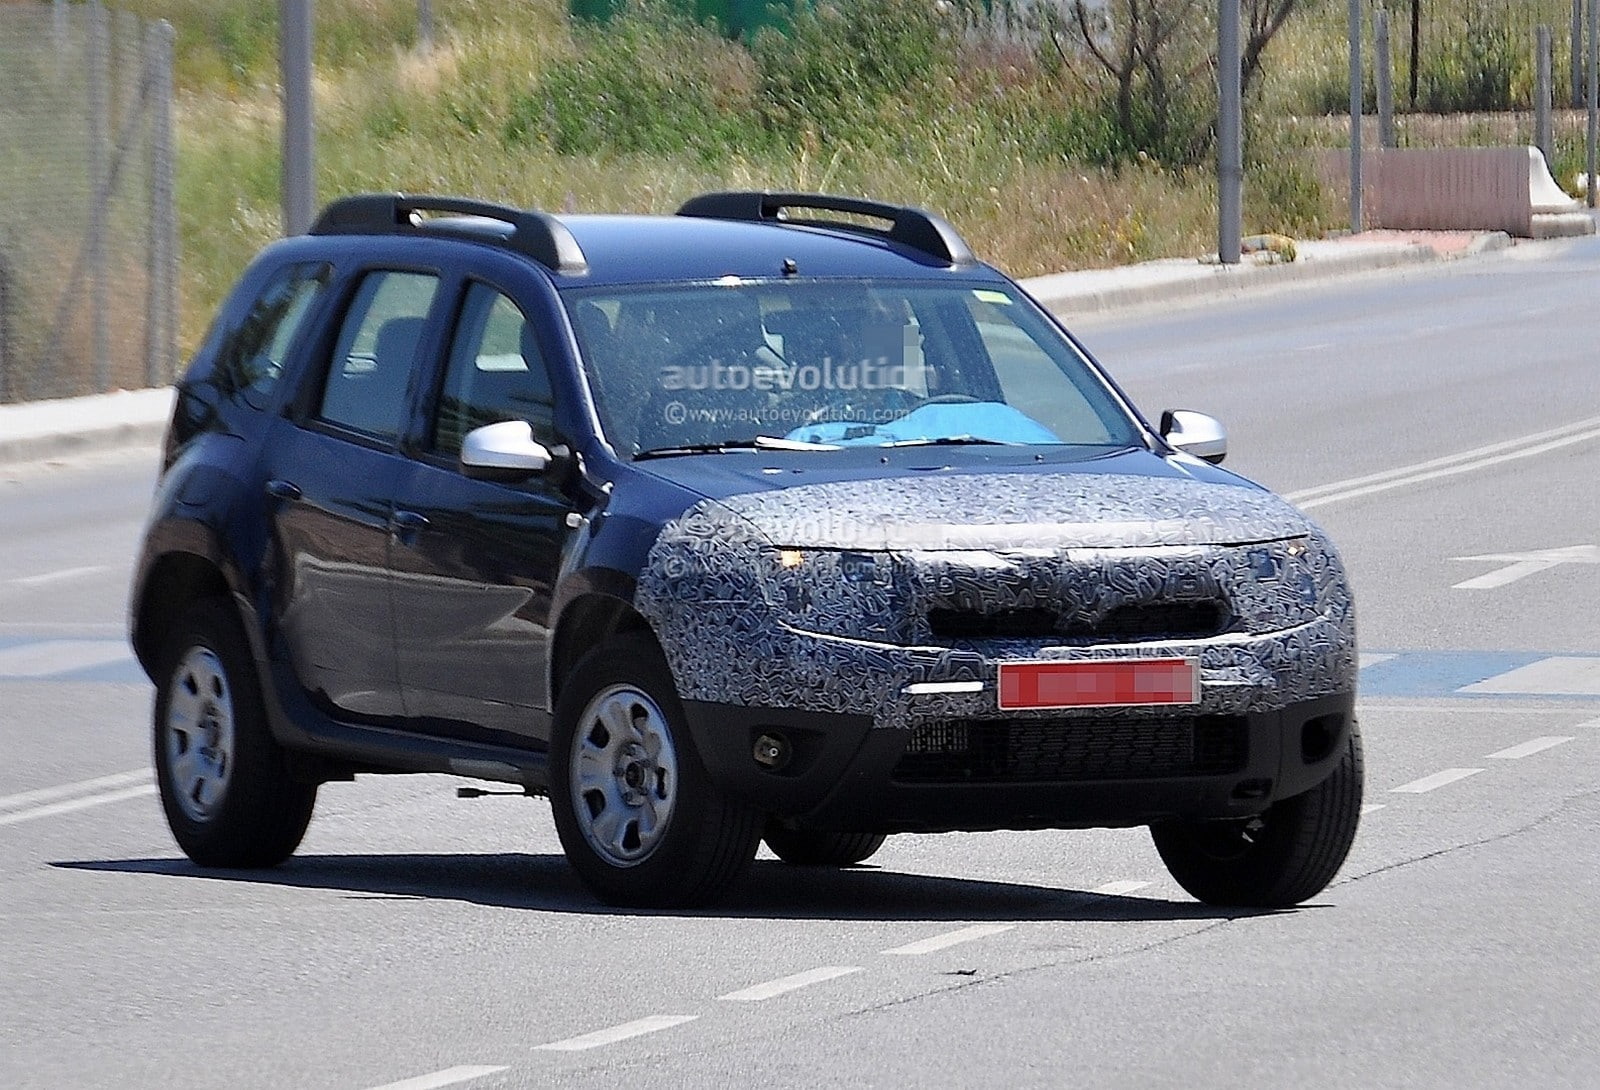 spyshot le futur dacia duster 2013 surpris en cavale. Black Bedroom Furniture Sets. Home Design Ideas